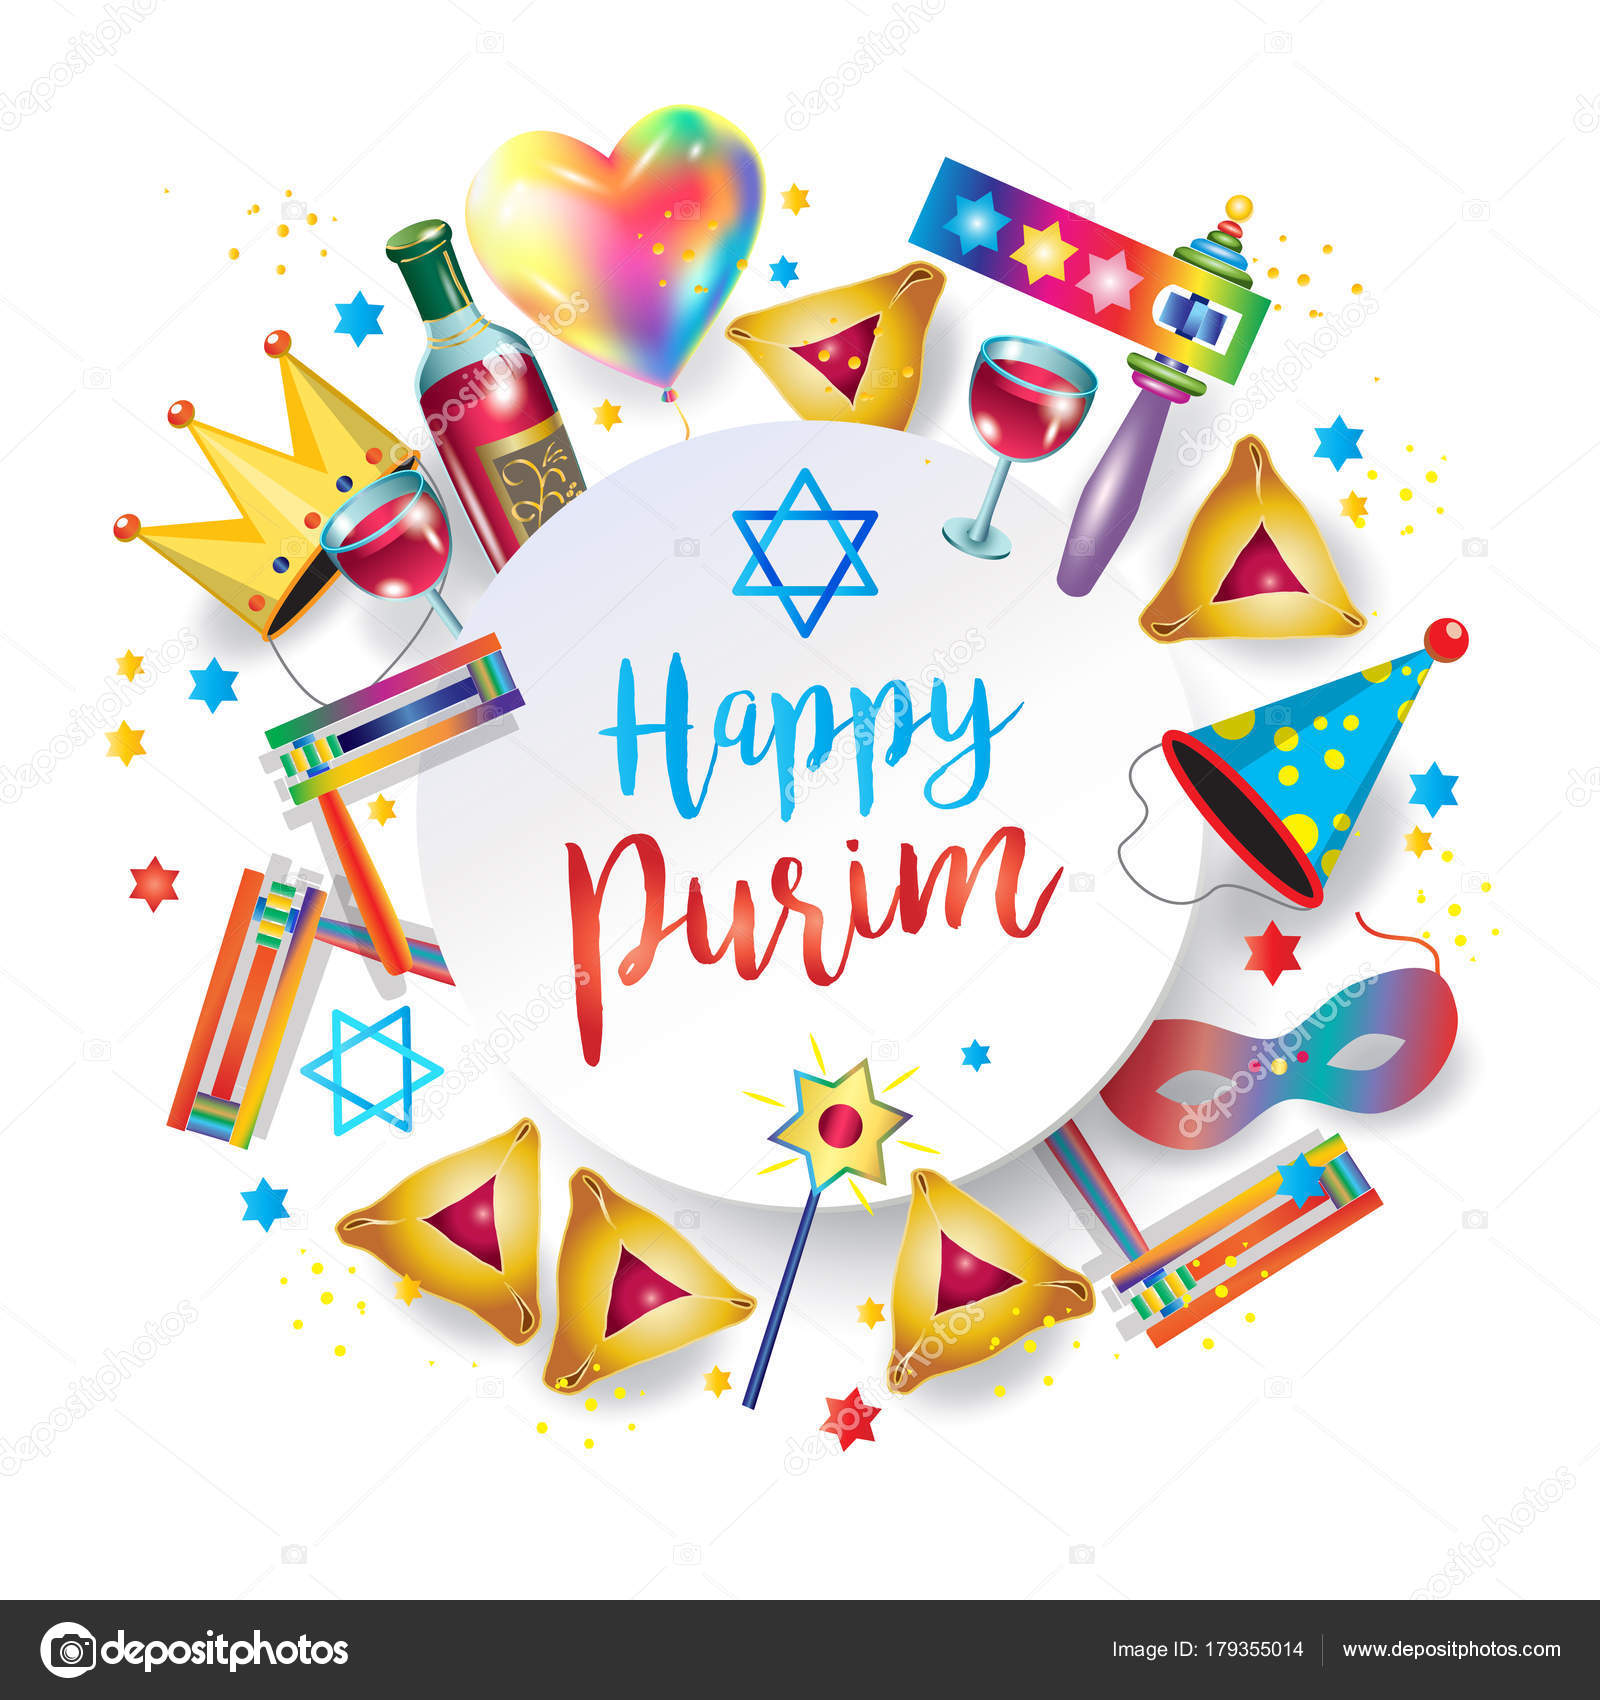 Happy purim jewish holiday greeting card traditional purim symbols happy purim jewish holiday greeting card with traditional purim symbols scroll banner purim gifts basket noisemaker masque gragger wine bottle m4hsunfo Image collections